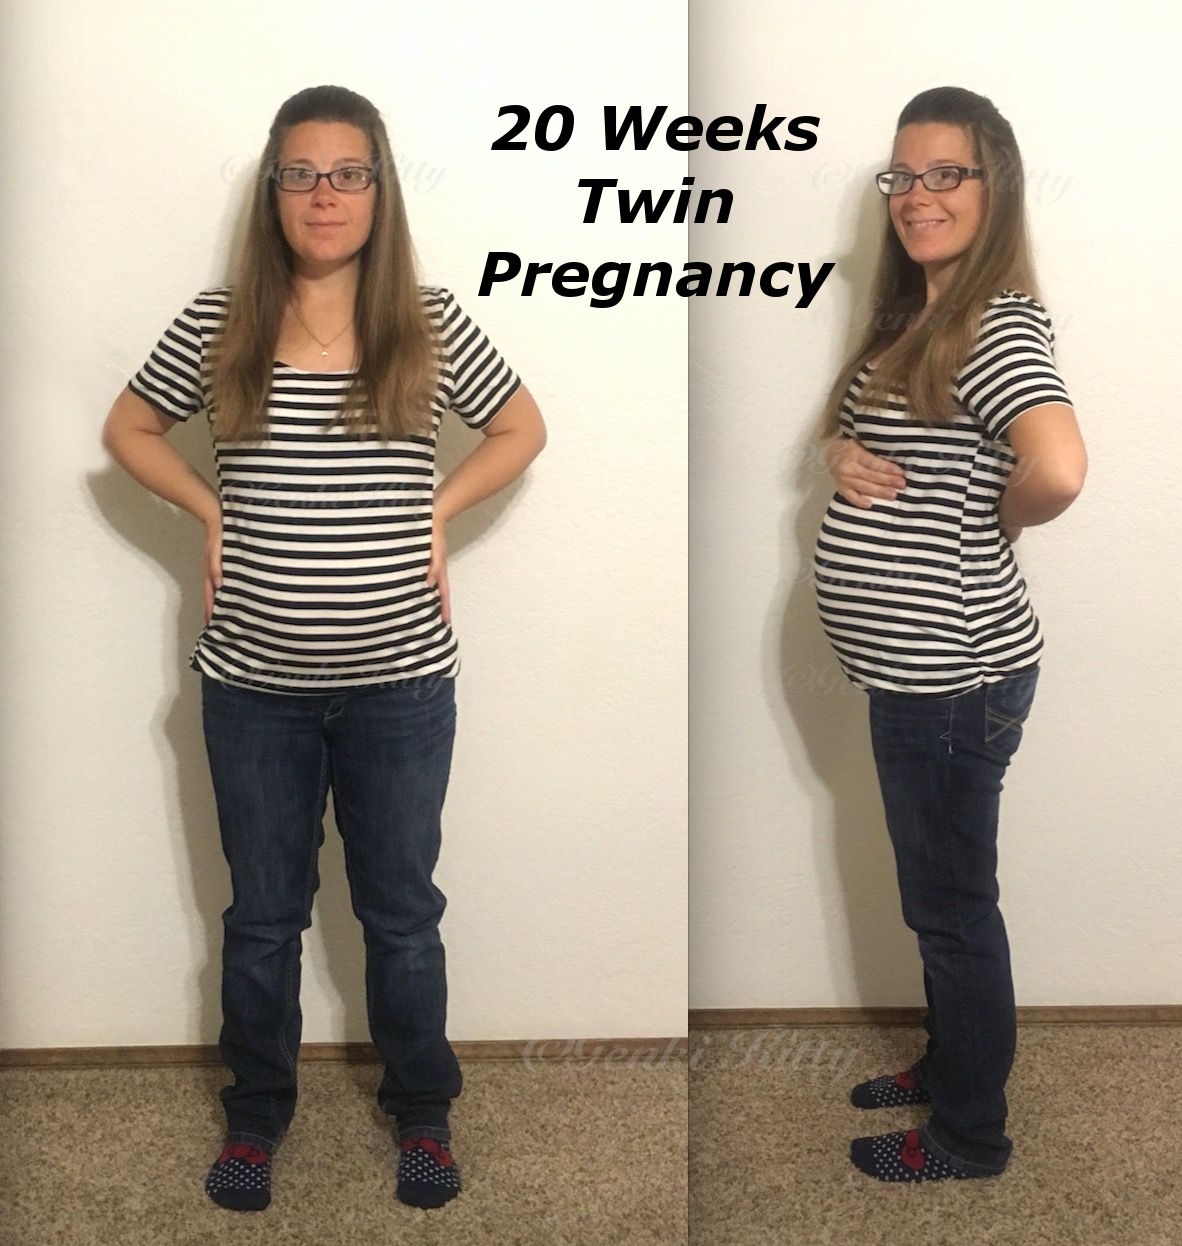 20 weeks twin pregnancy